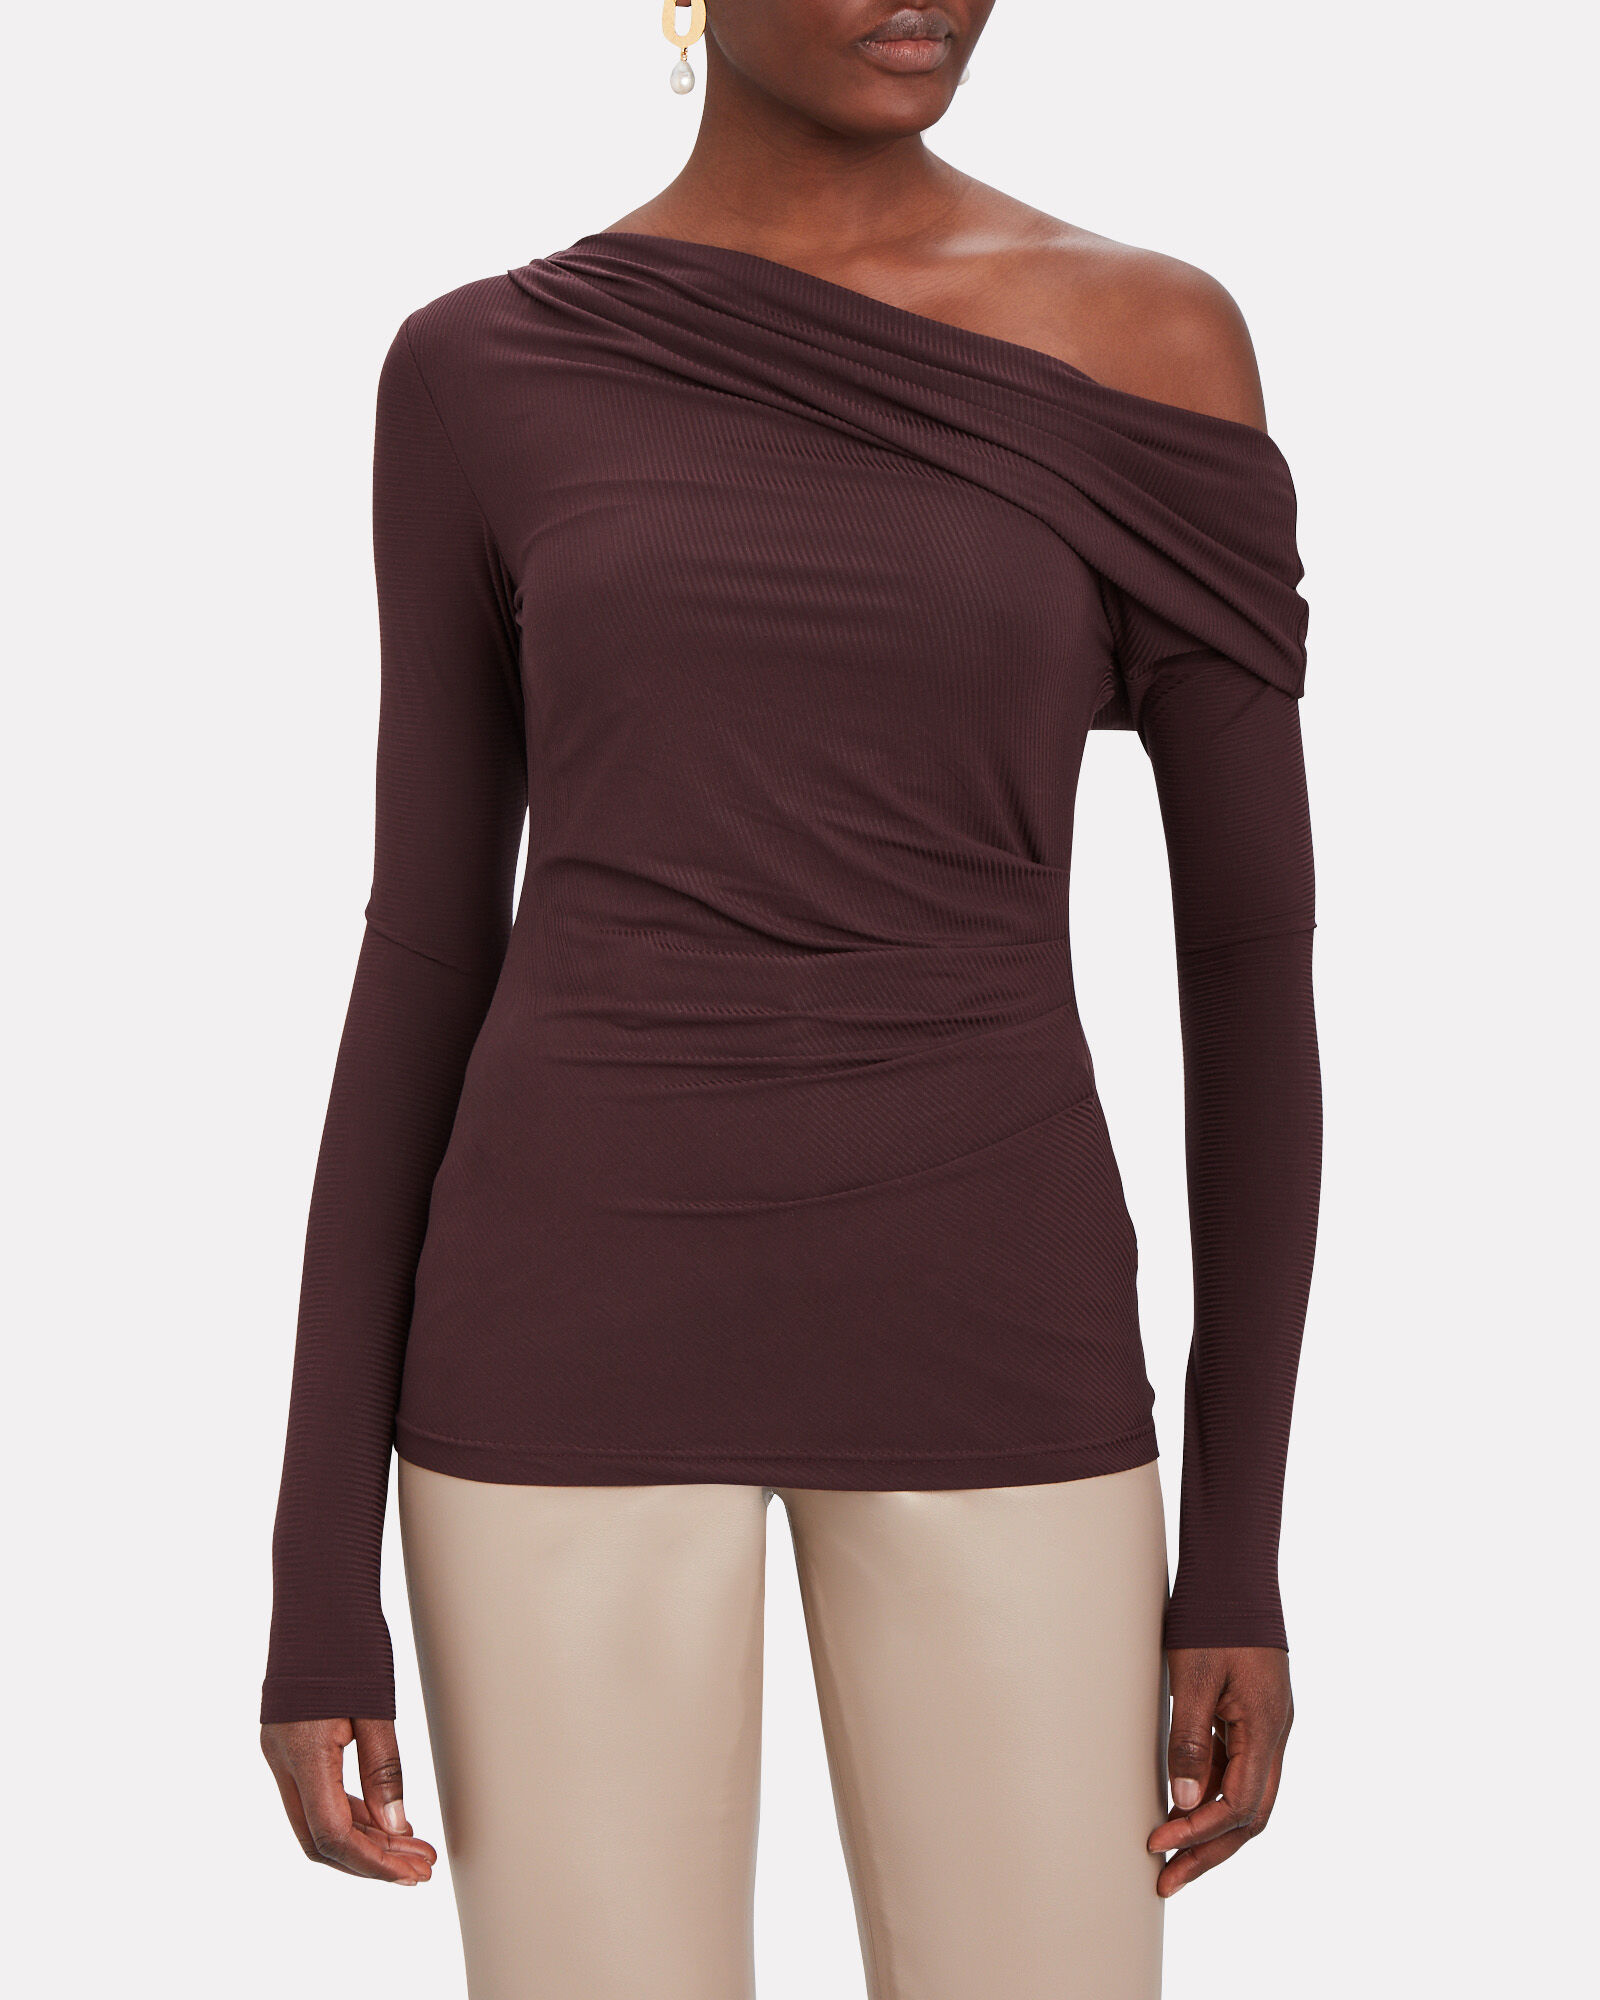 One-Shoulder Rib Knit Top, MERLOT, hi-res